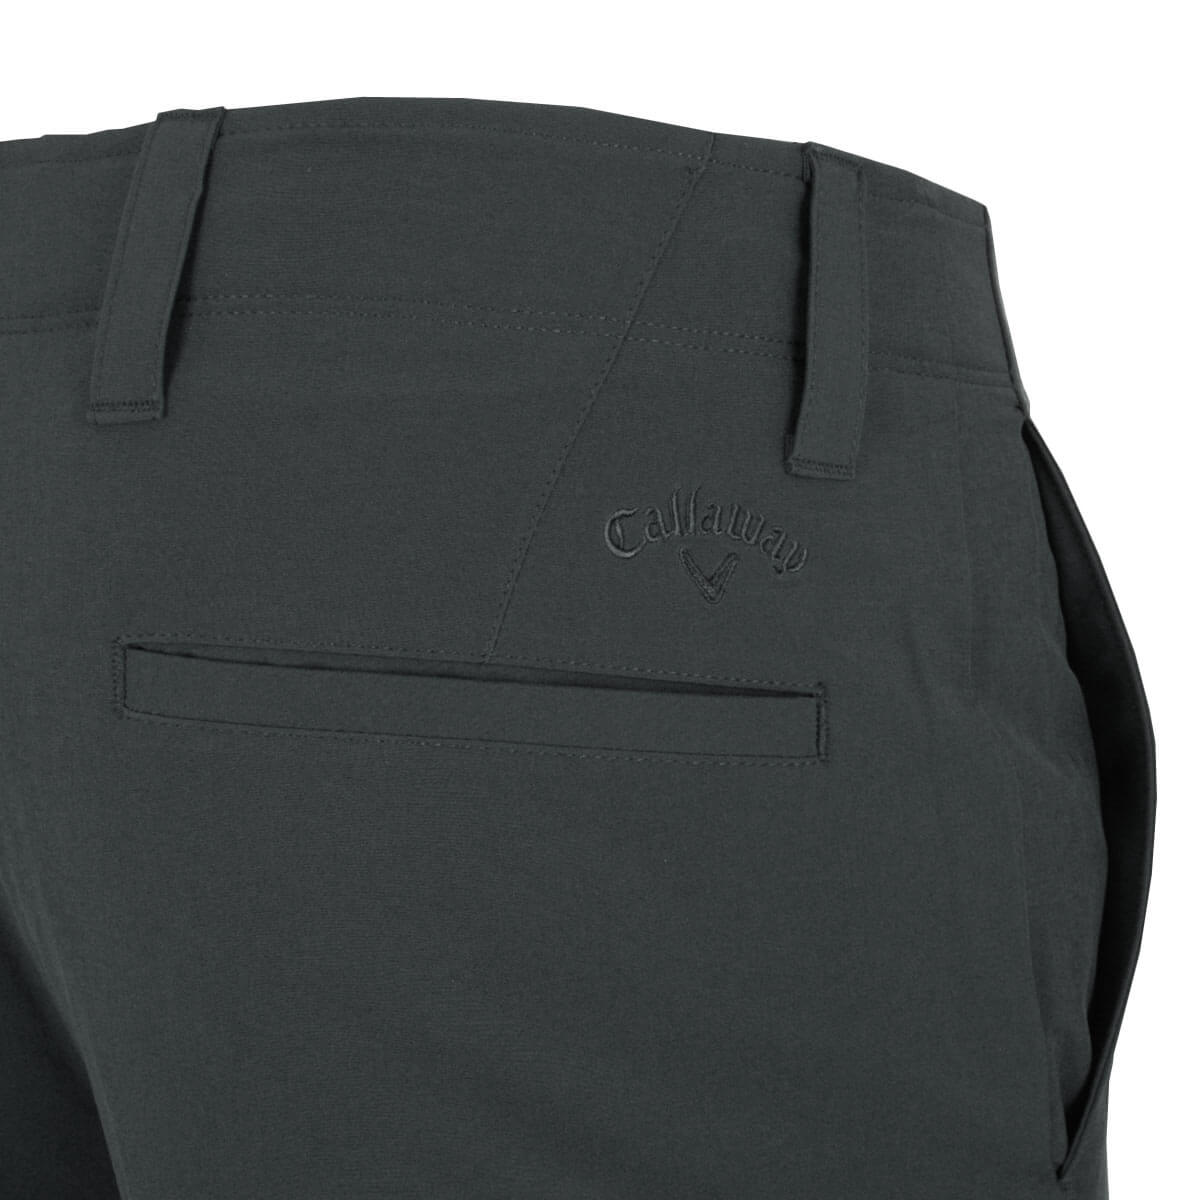 Callaway-Golf-Mens-2020-Chev-Tech-II-Lightweight-Golf-Trousers-27-OFF-RRP thumbnail 4